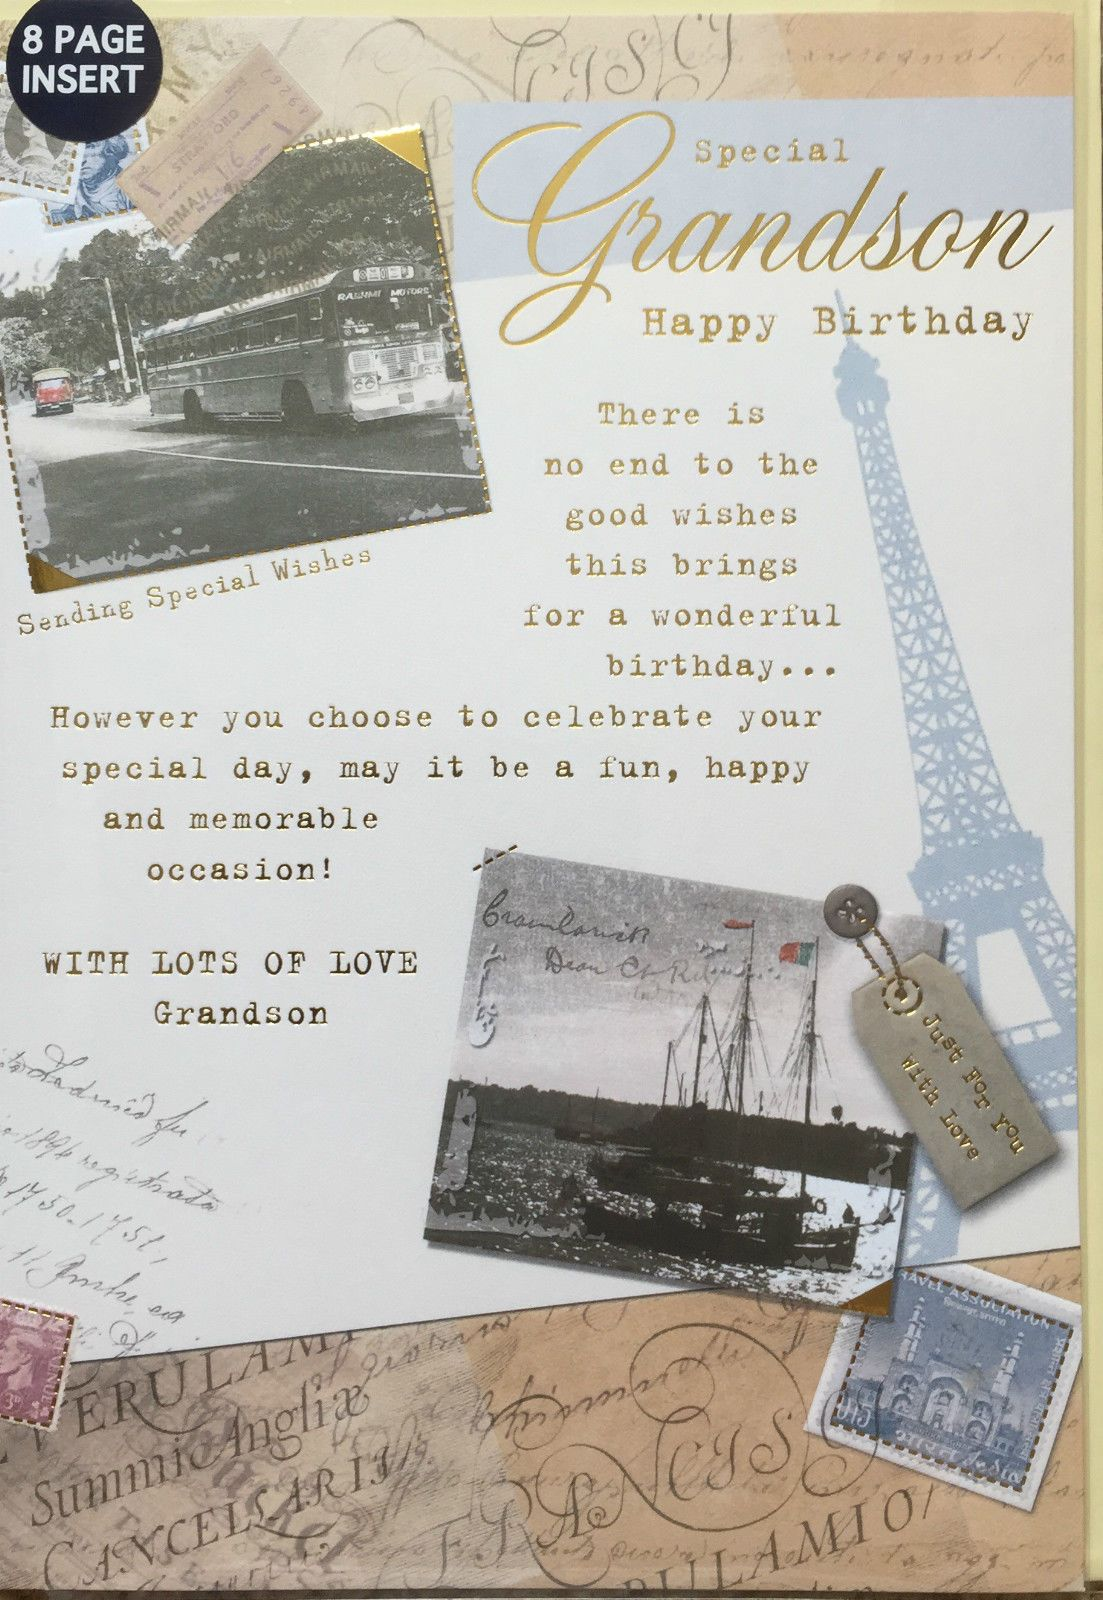 Special Grandson Happy Birthday Card 8 Page Insert Lovely Verse